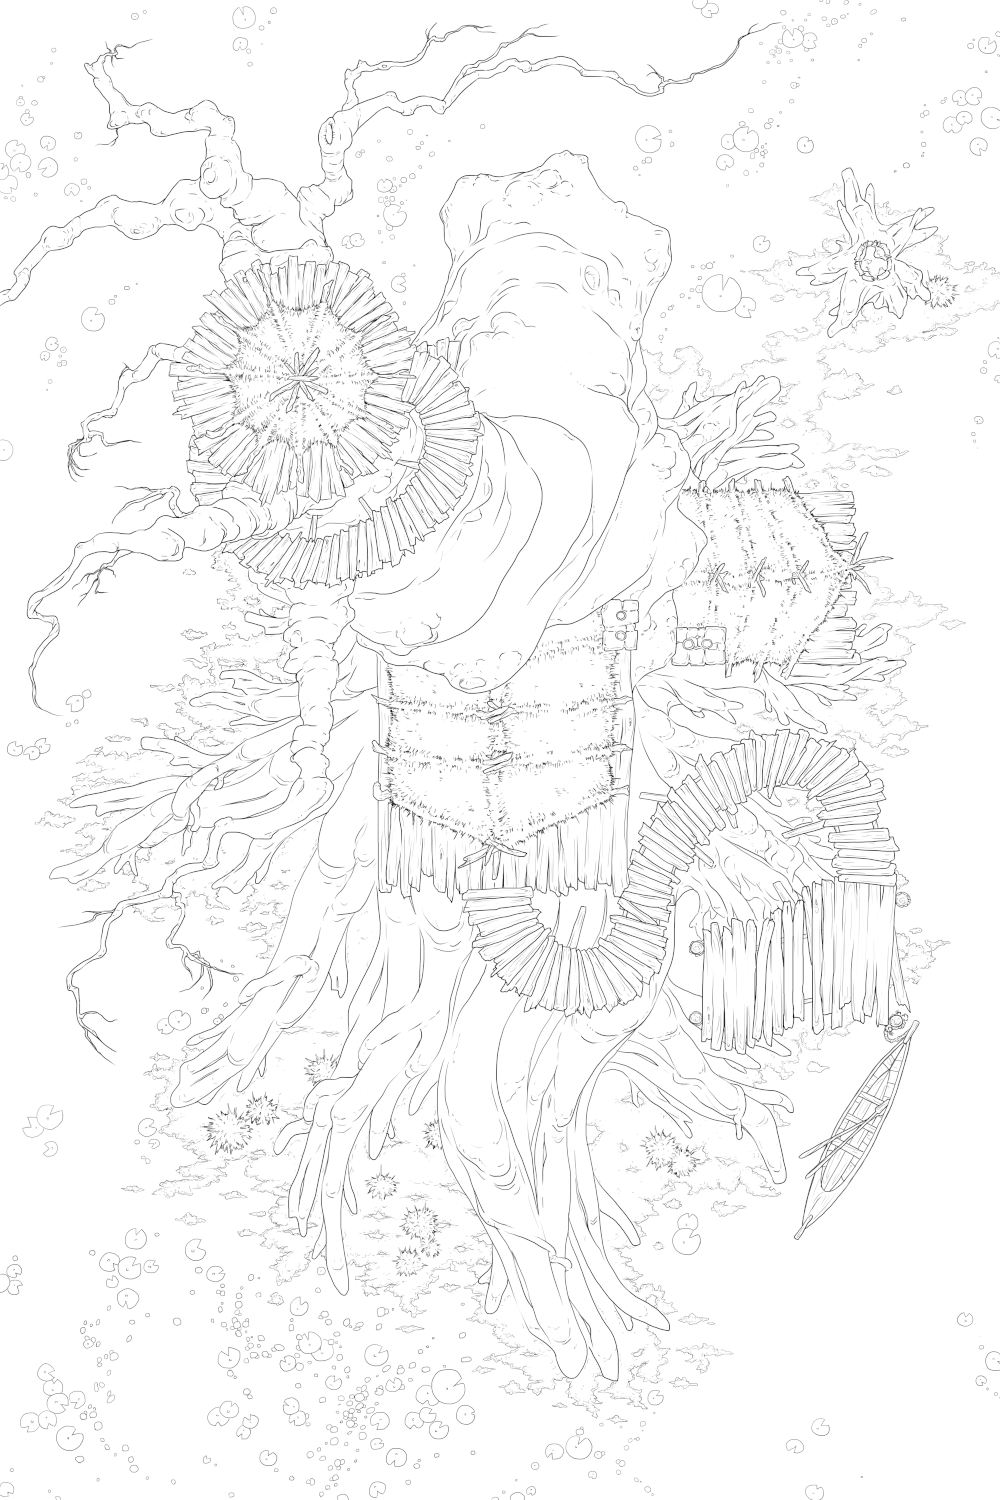 Finished Linework for the Exterior of the Hags's Tree